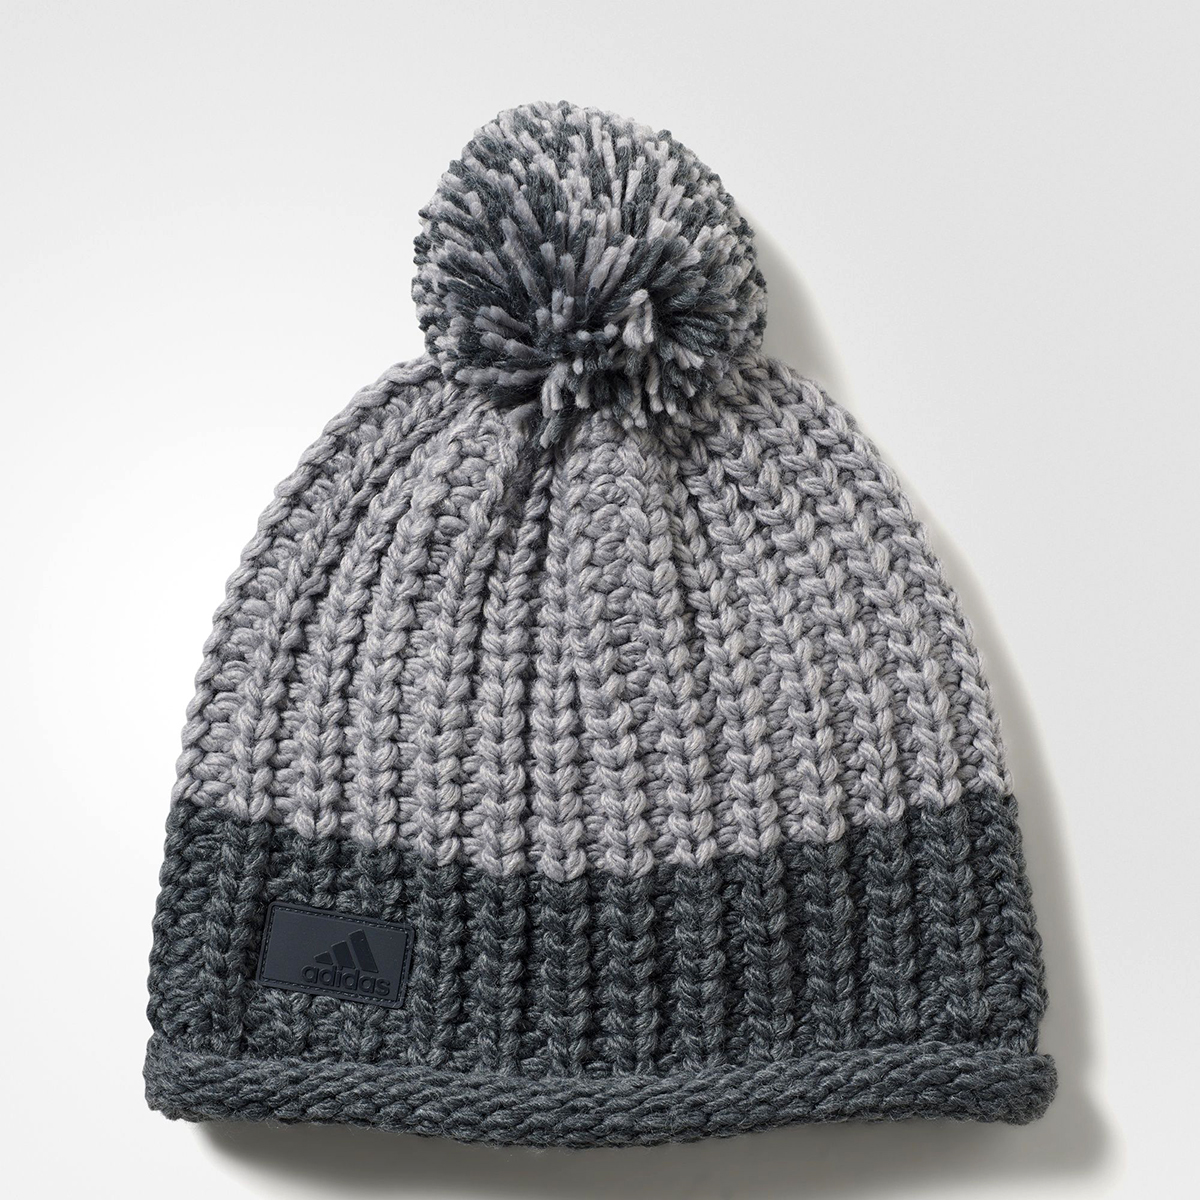 adidas WMNS Training Climawarm Chunky Winter Beanie - SPORTING GOODS Caps  c4636a5d4d2f